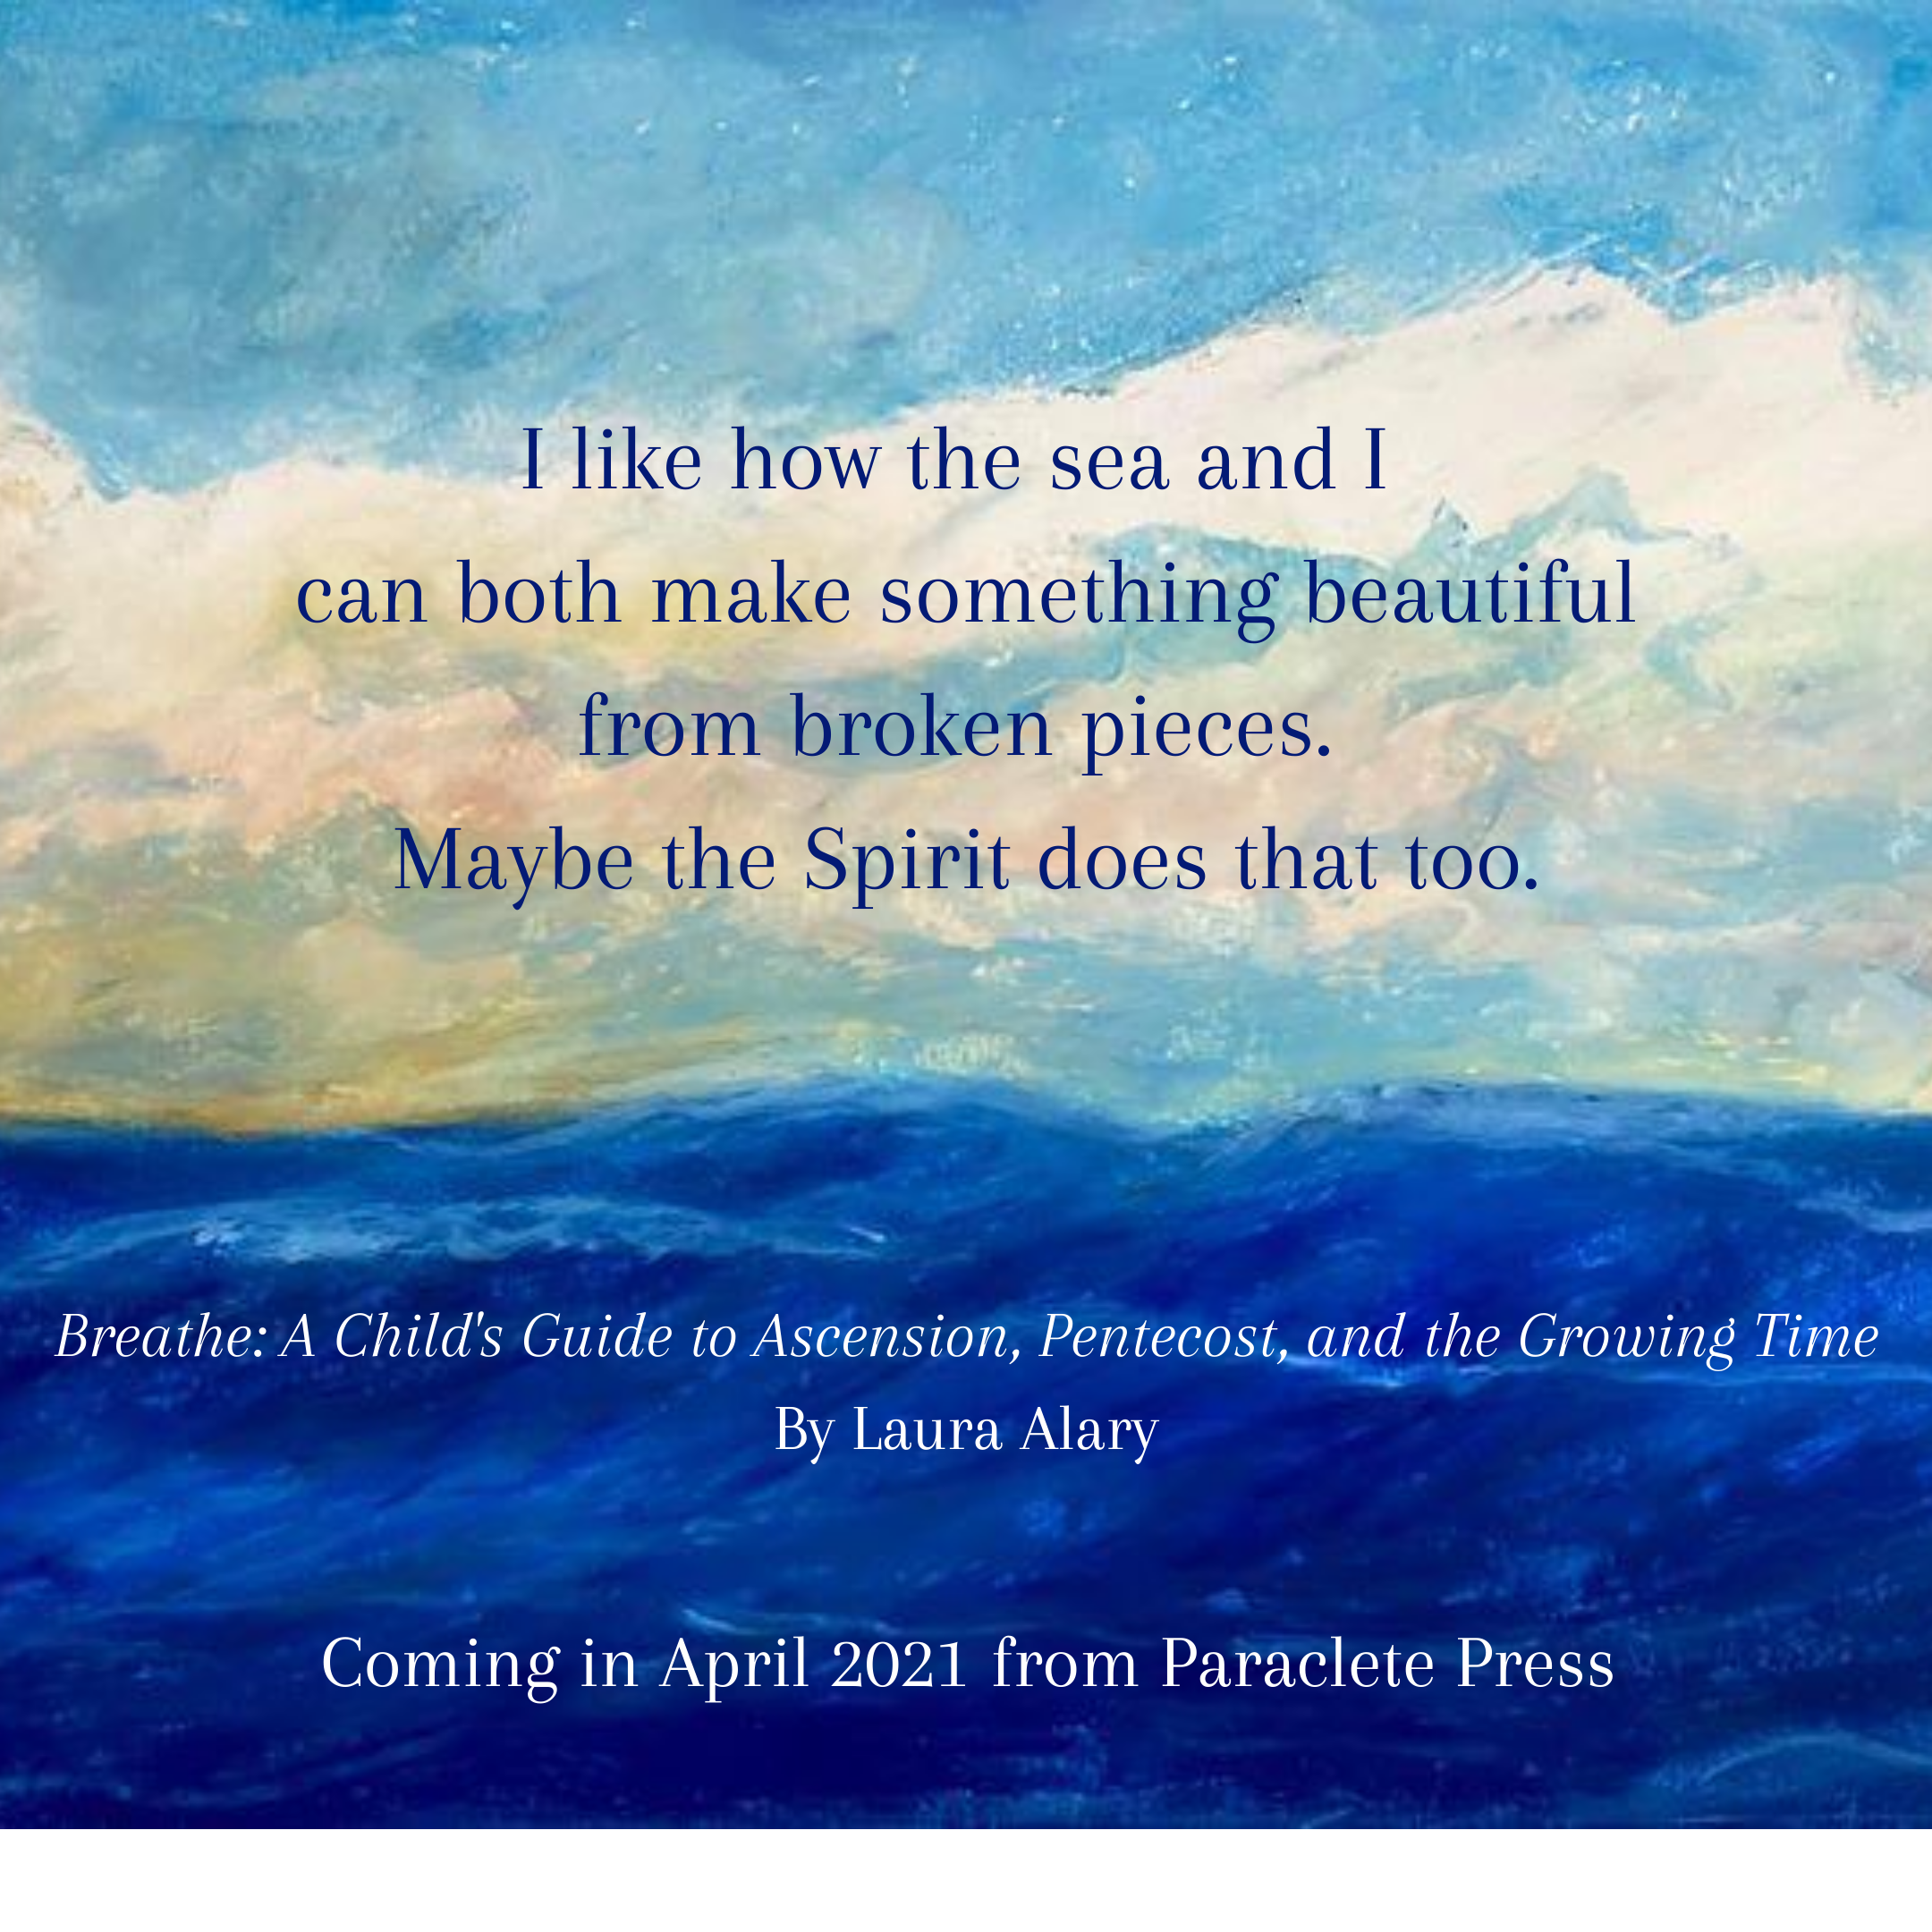 I like how the sea and I can both make something beautiful from broken pieces. Maybe the Spirit does that too.-3